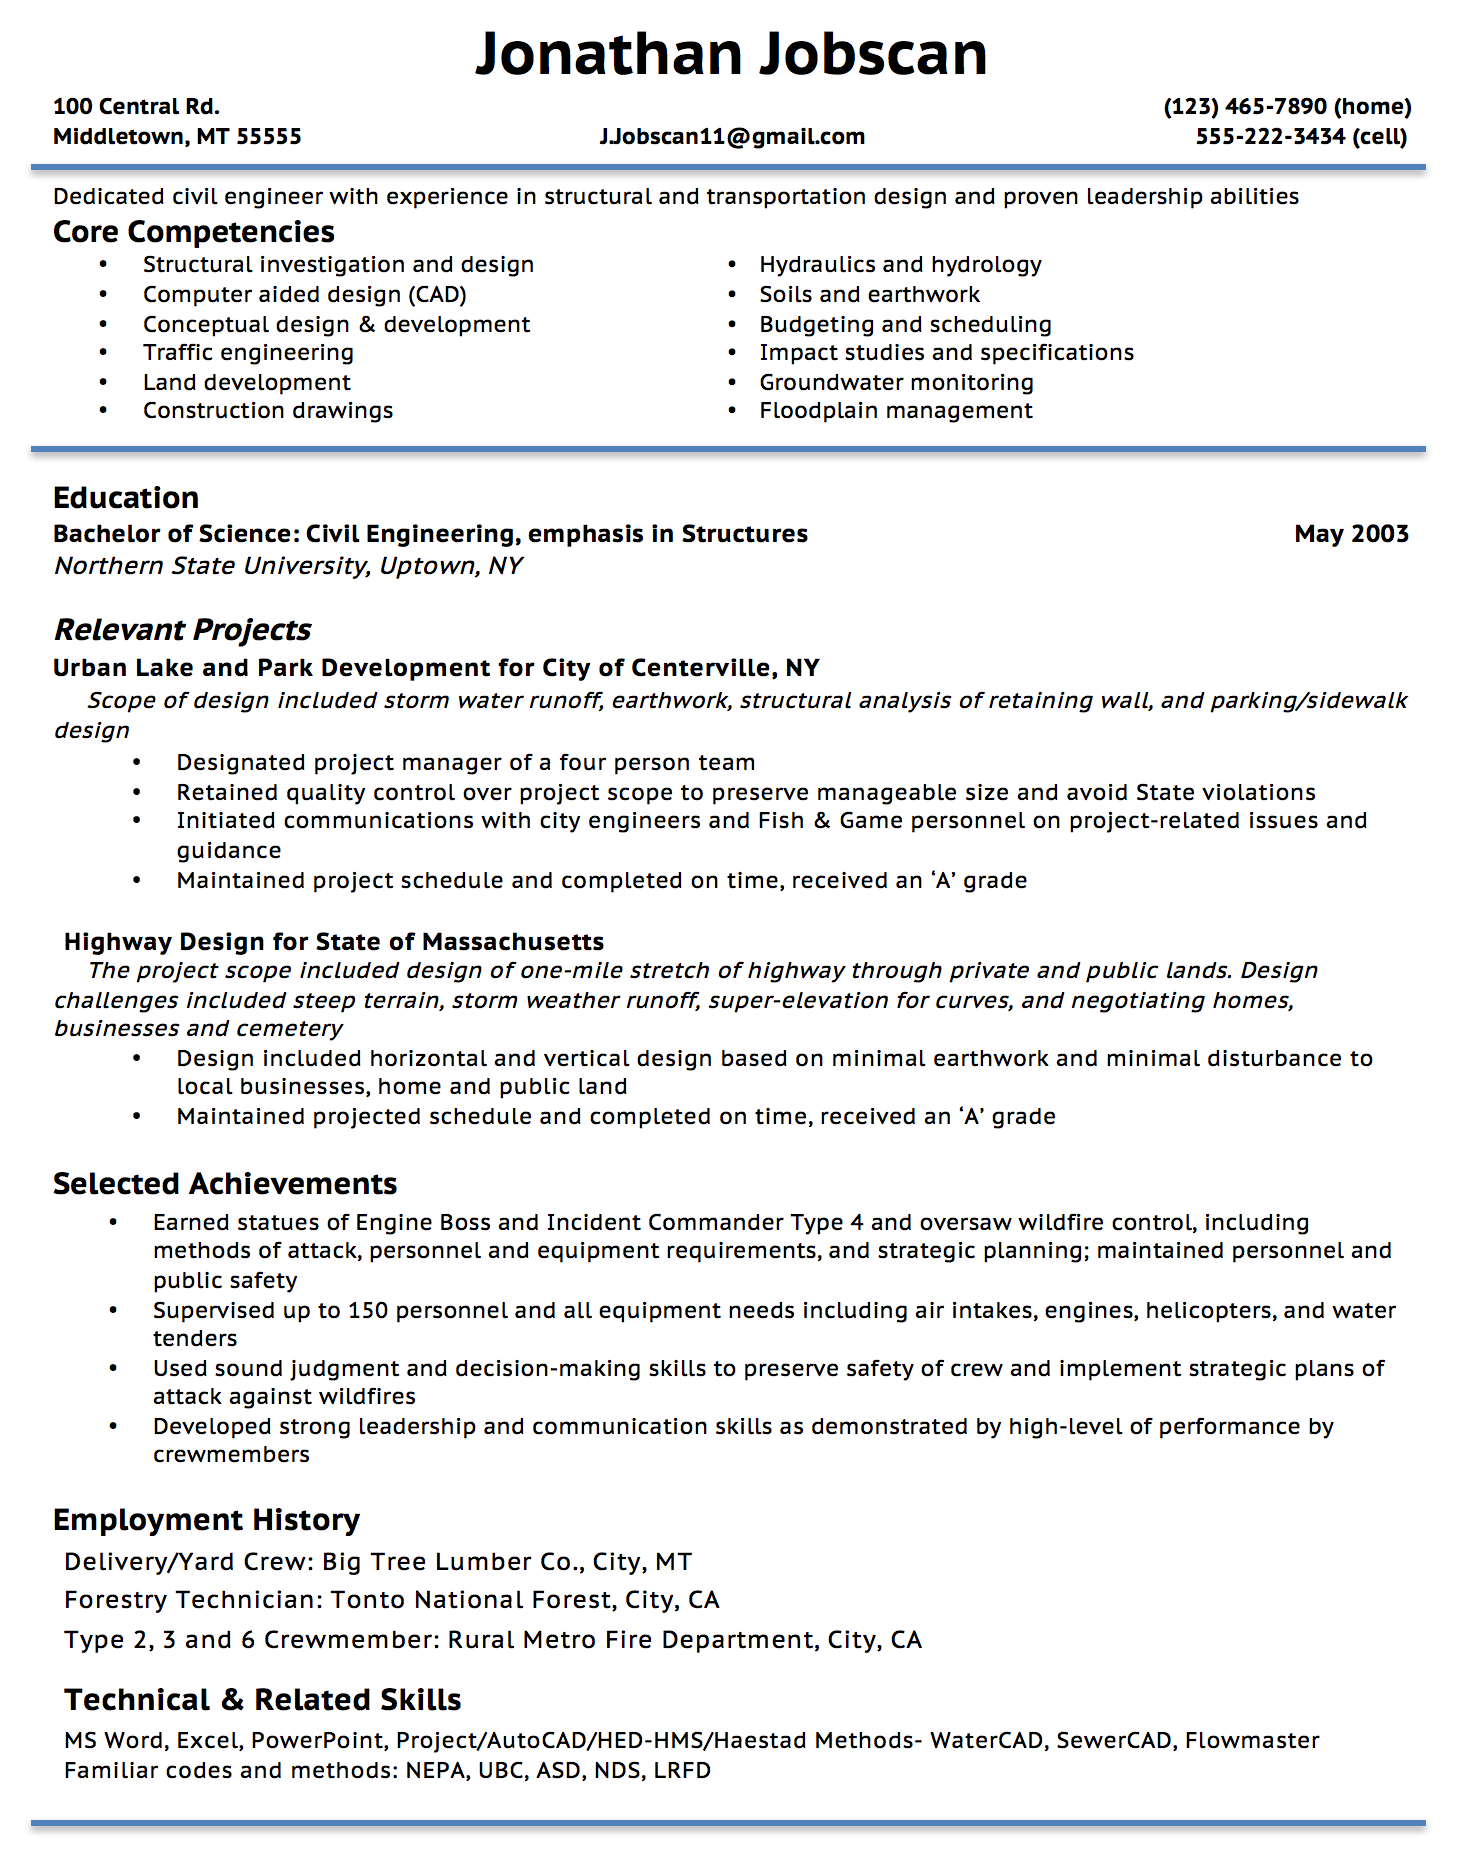 Opposenewapstandardsus  Prepossessing Resume Writing Guide  Jobscan With Extraordinary Example Of A Functional Resume Format With Amazing Free Resumes Downloads Also Nurse Sample Resume In Addition Sample Resume With Objective And Resume Rewrite As Well As Urban Planner Resume Additionally Ot Resume From Jobscanco With Opposenewapstandardsus  Extraordinary Resume Writing Guide  Jobscan With Amazing Example Of A Functional Resume Format And Prepossessing Free Resumes Downloads Also Nurse Sample Resume In Addition Sample Resume With Objective From Jobscanco